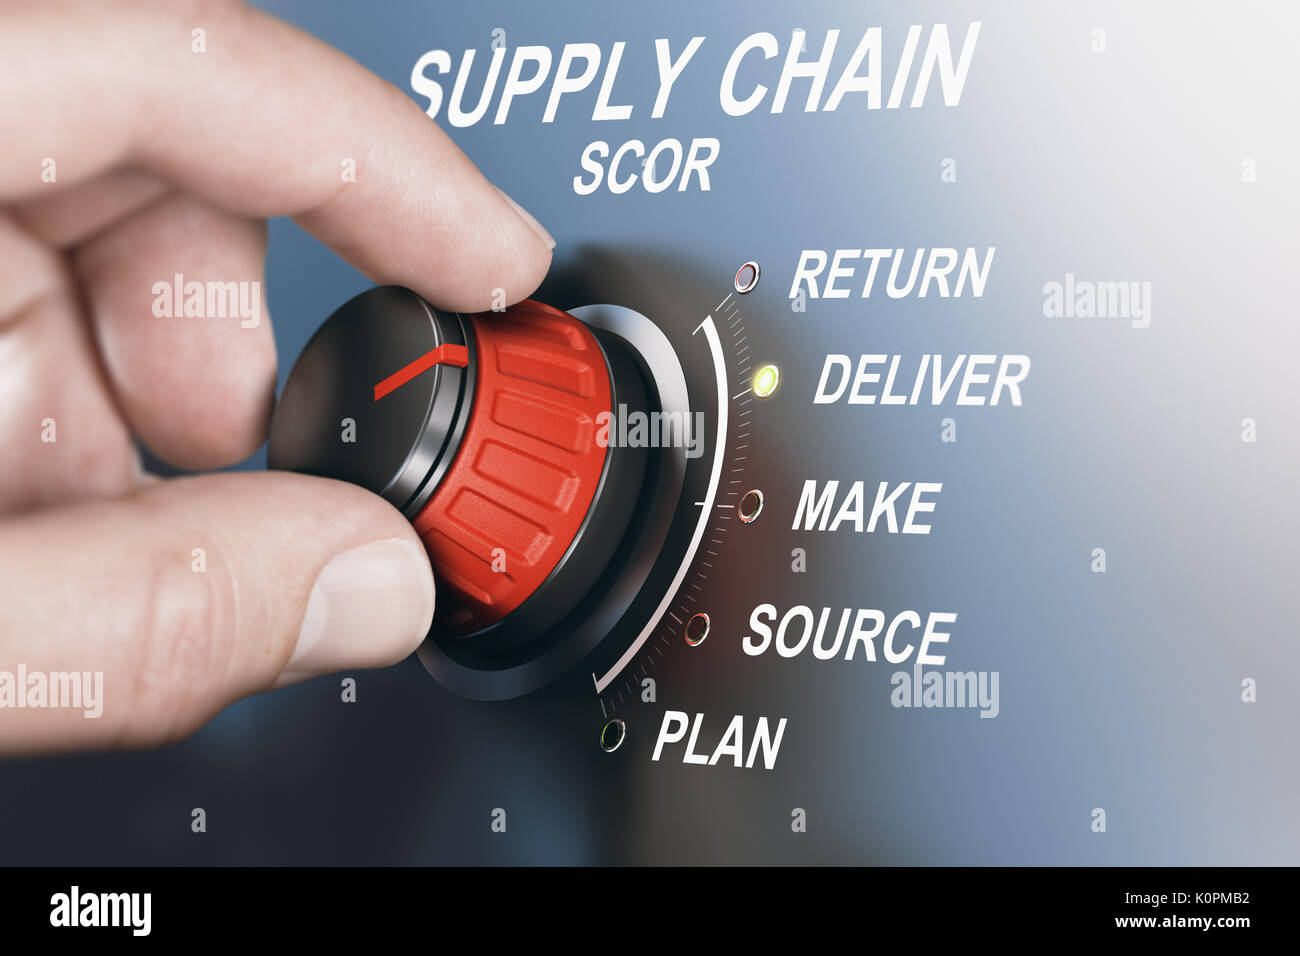 Hand turning SCOR switch to deliver position. Supply chain management concept. Composite image between a hand photography Stock Photo